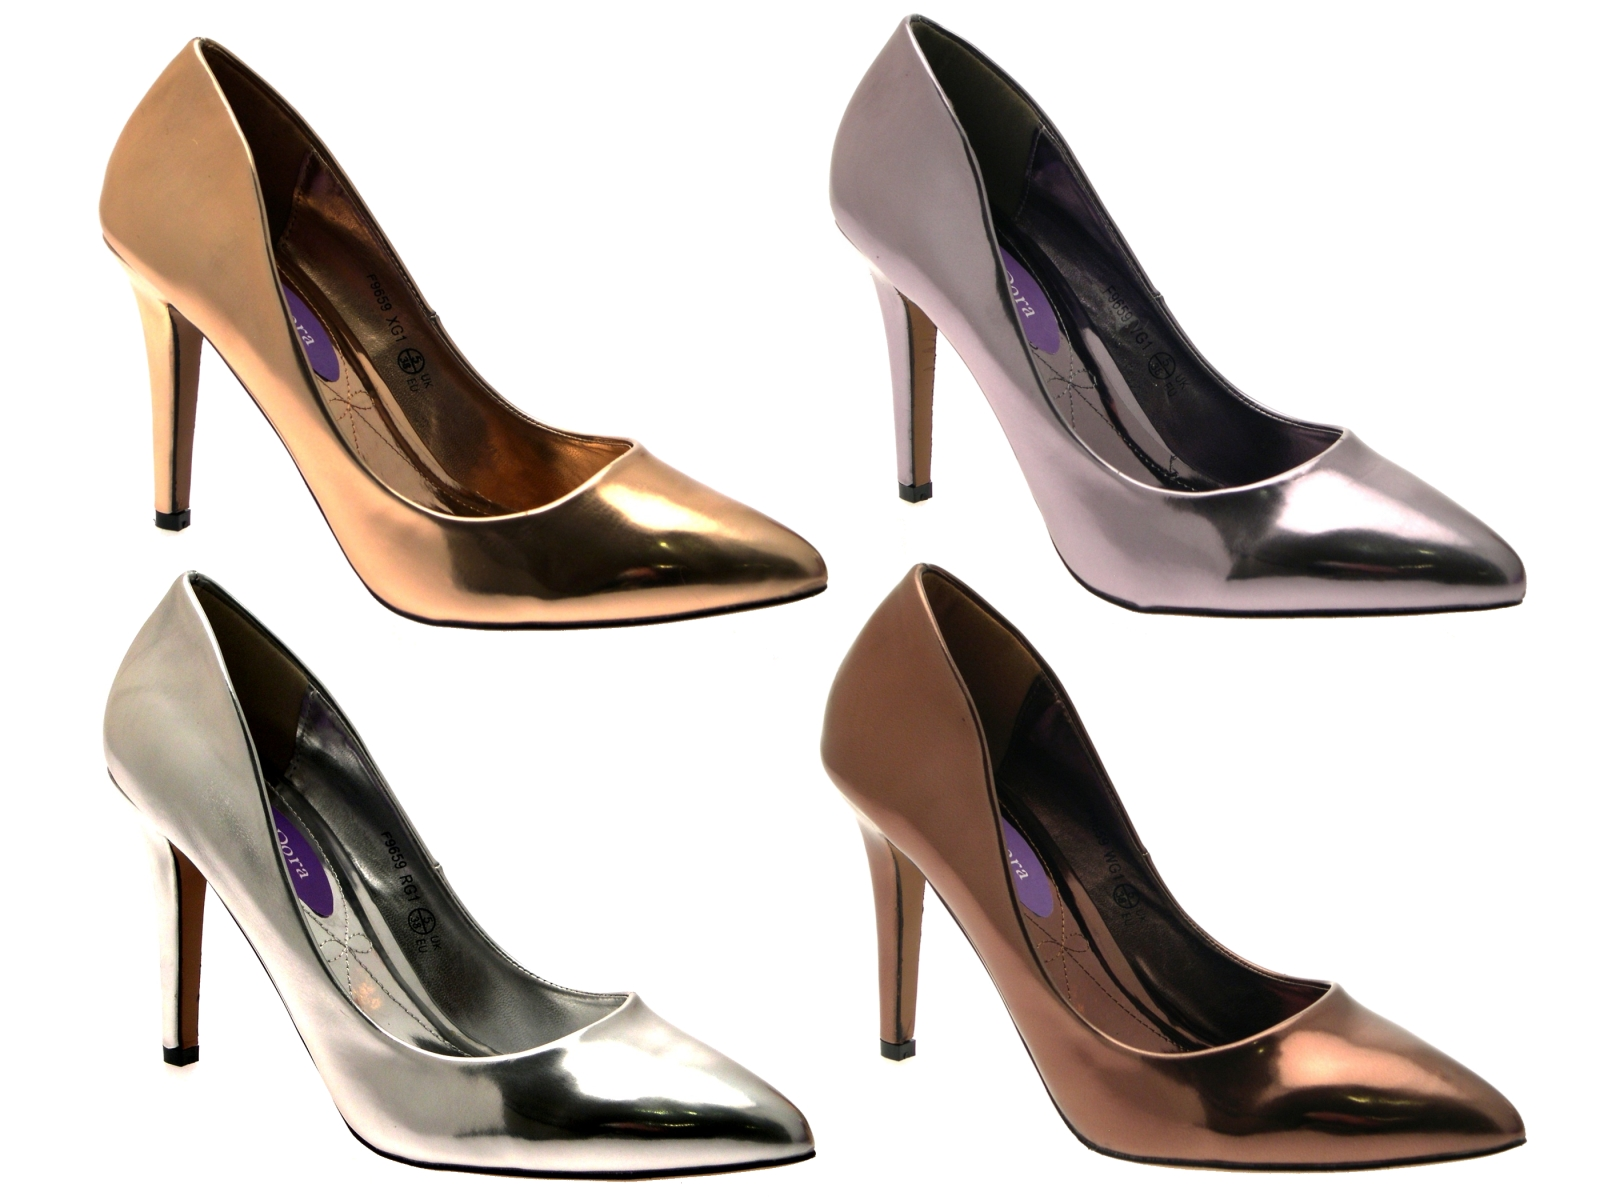 Womens-Metallic-Pointed-Toe-Court-Stiletto-High-Heels-Ladies-Work-Office-Shoes thumbnail 39